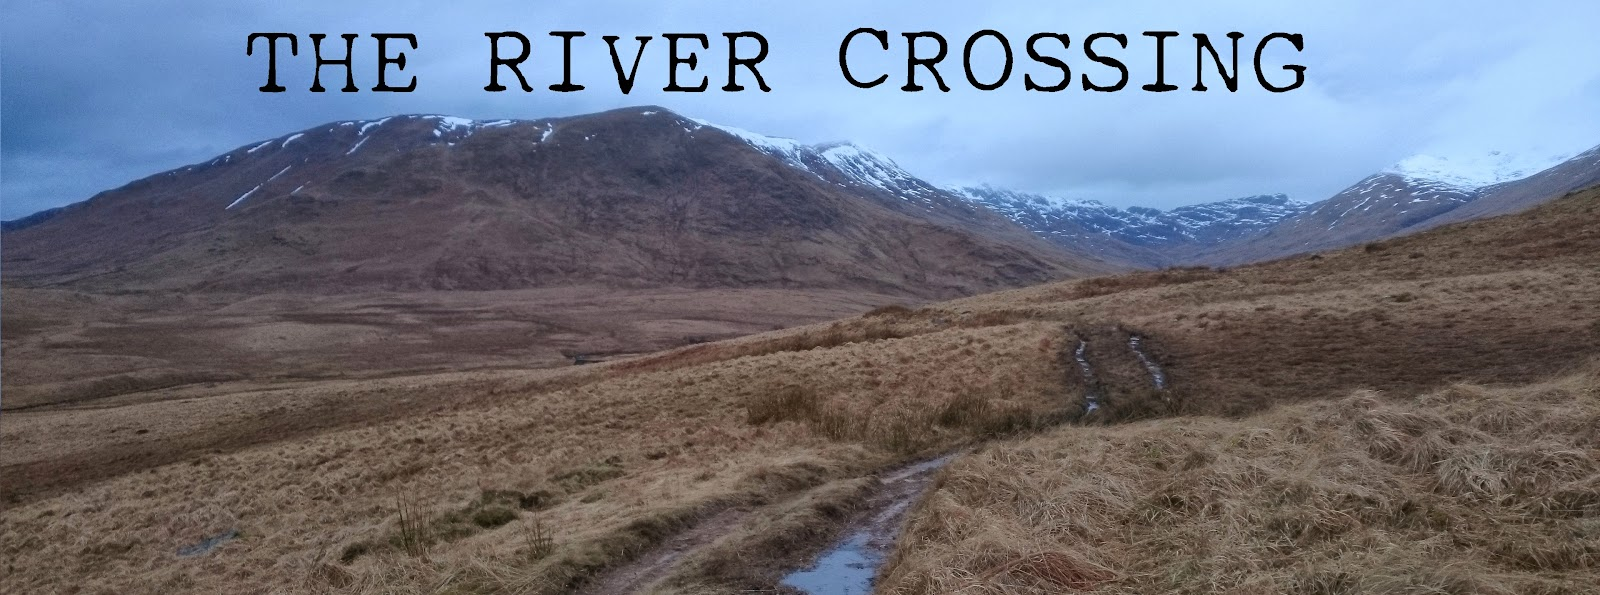 https://sites.google.com/site/tombrucecycling/the-river-crossing